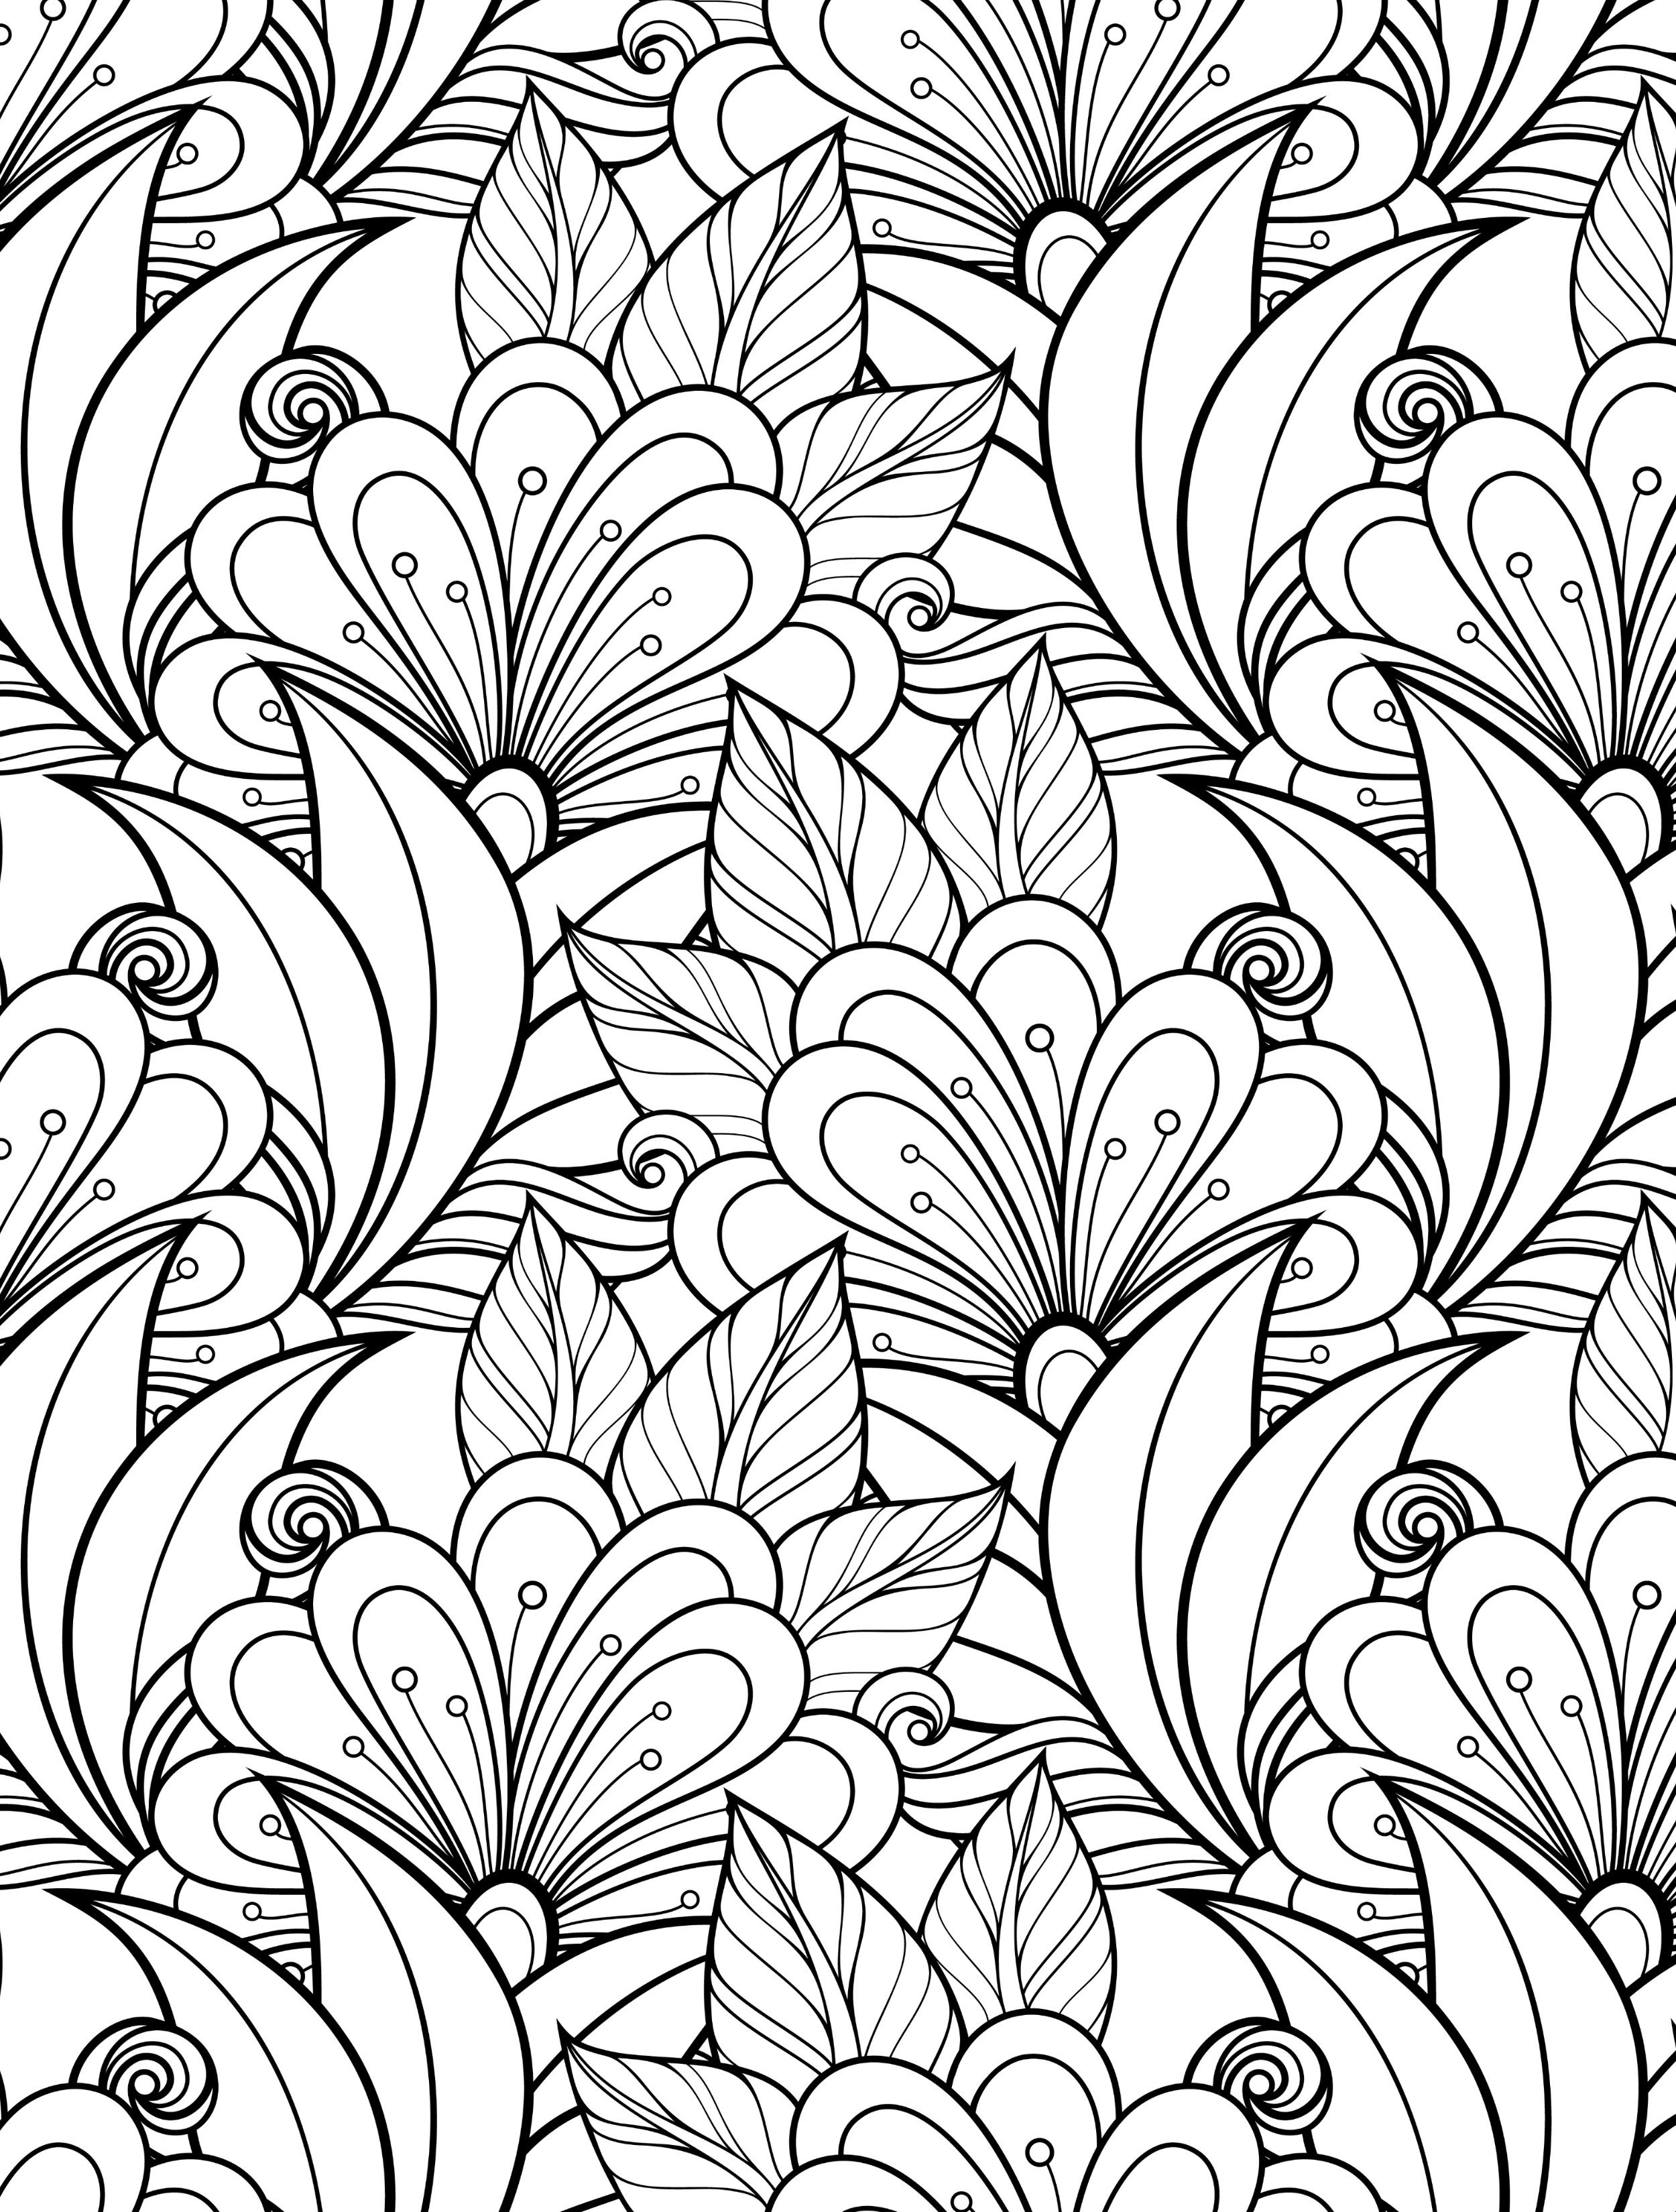 Best ideas about Adult Coloring Books Printable . Save or Pin 24 More Free Printable Adult Coloring Pages Page 7 of 25 Now.